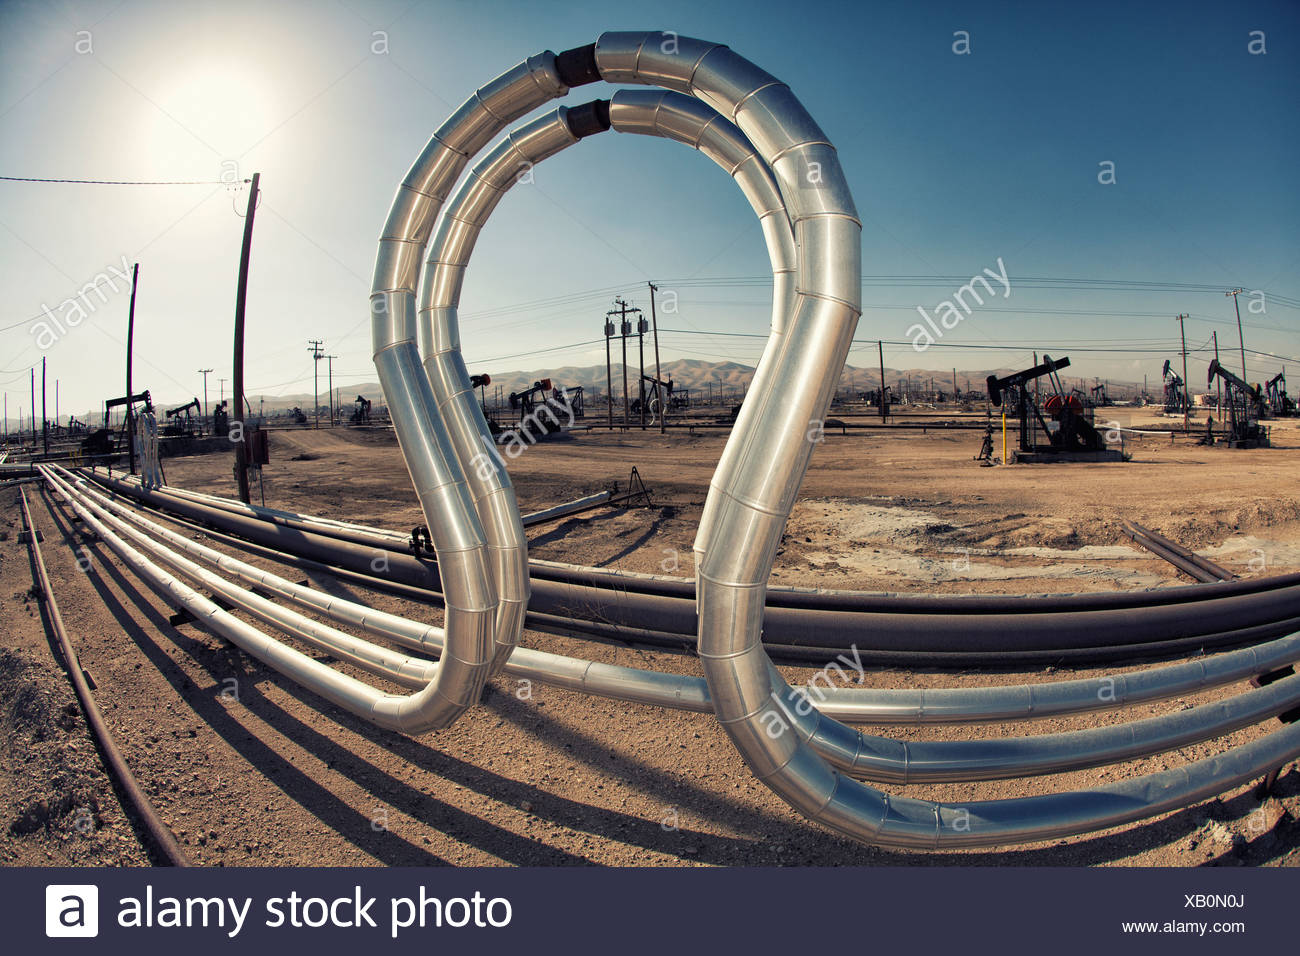 Curved pipes in oil field - Stock Image